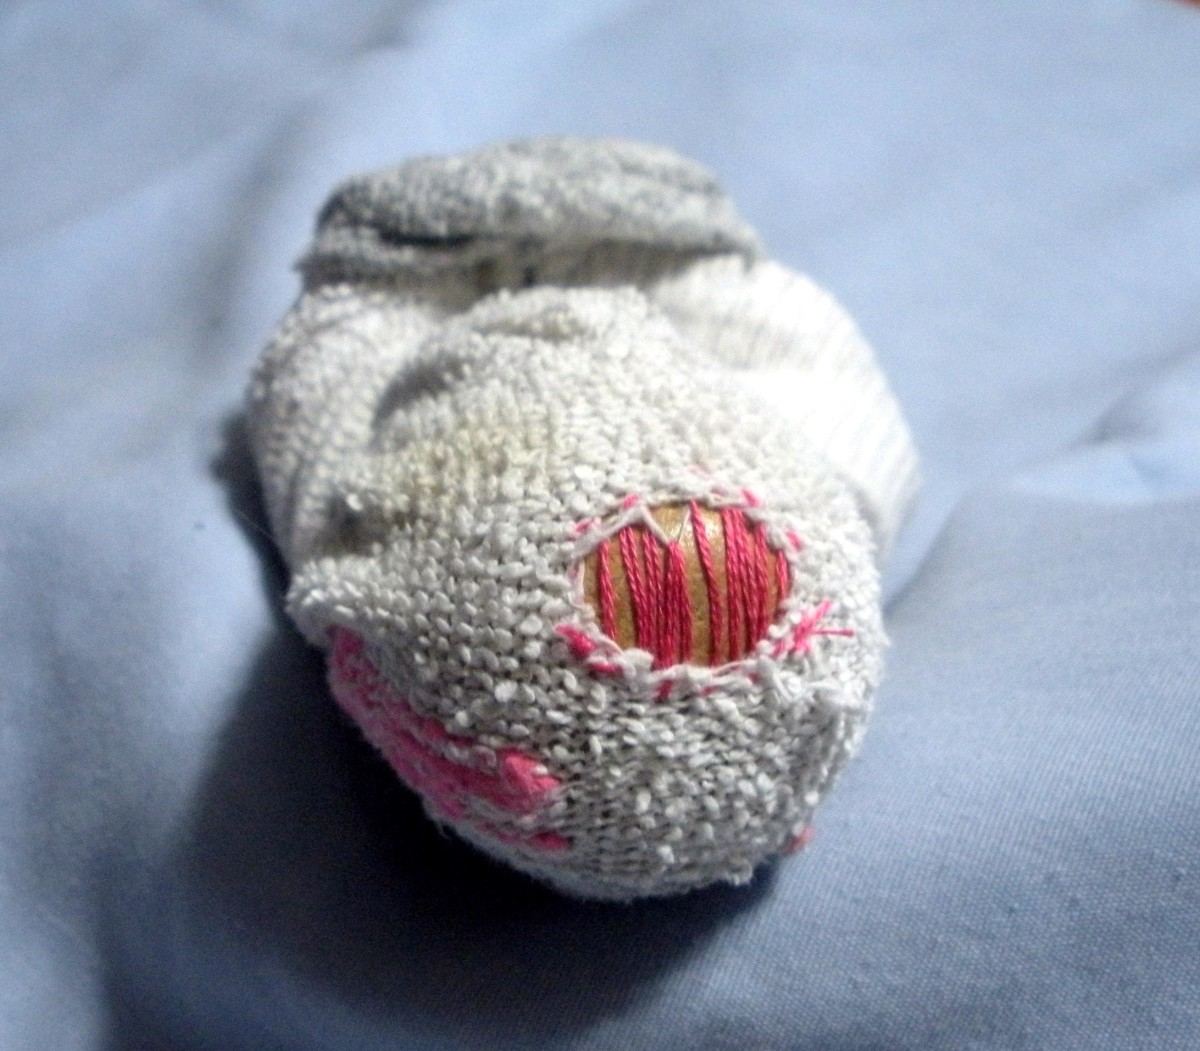 darn-socks-learn-to-mend-socks-and-save-money